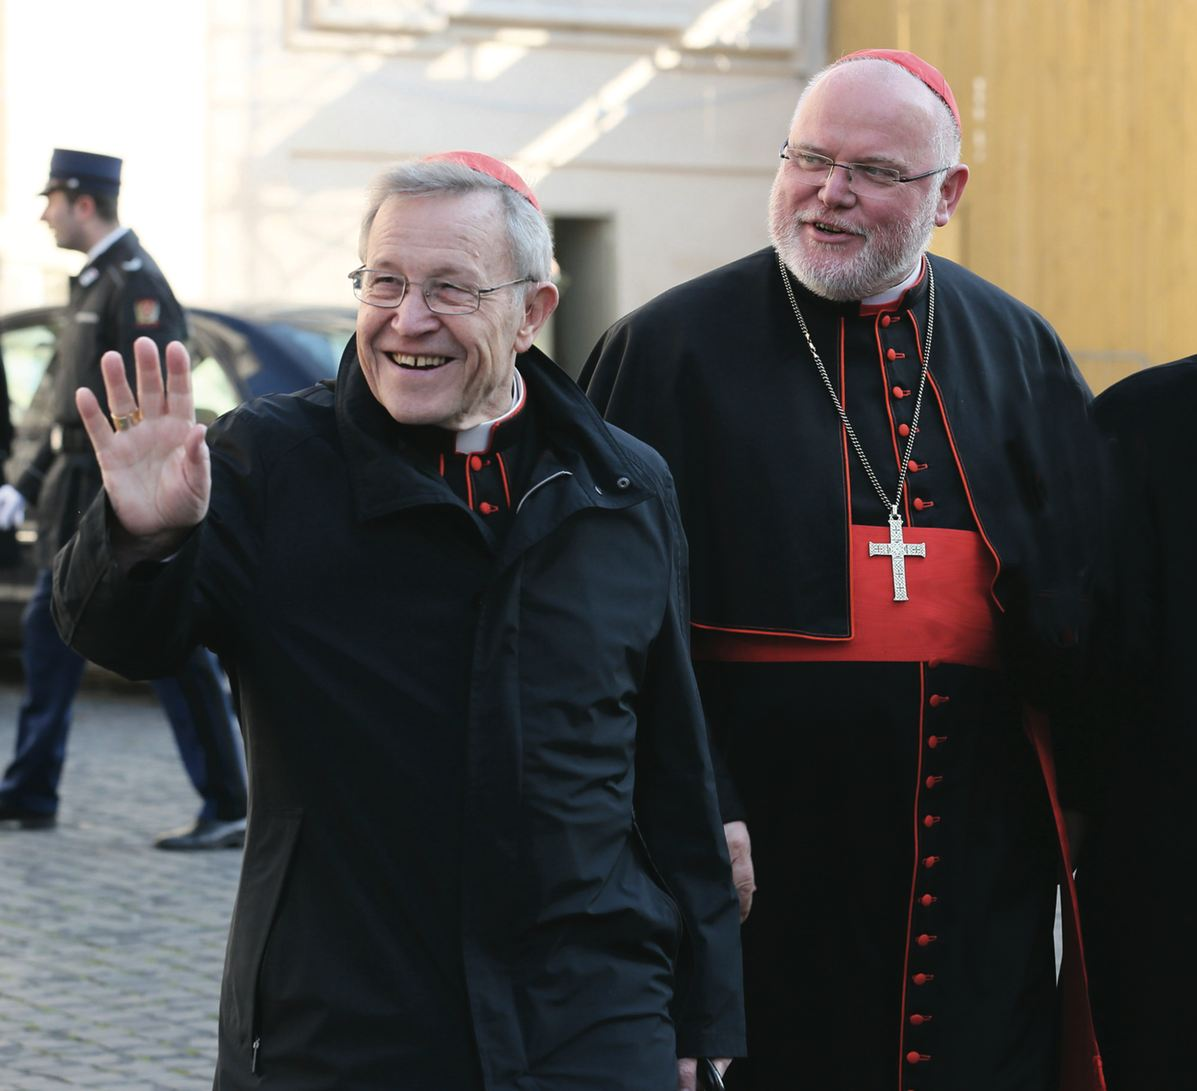 """Above, Cardinal Walter Kasper, promotor of the """"open"""" line in favor of Communion for the remarried, with Cardinal Reinhard Marx, who, as President of the German Bishops' Conference, has claimed that """"we are not a branch office of Rome"""""""